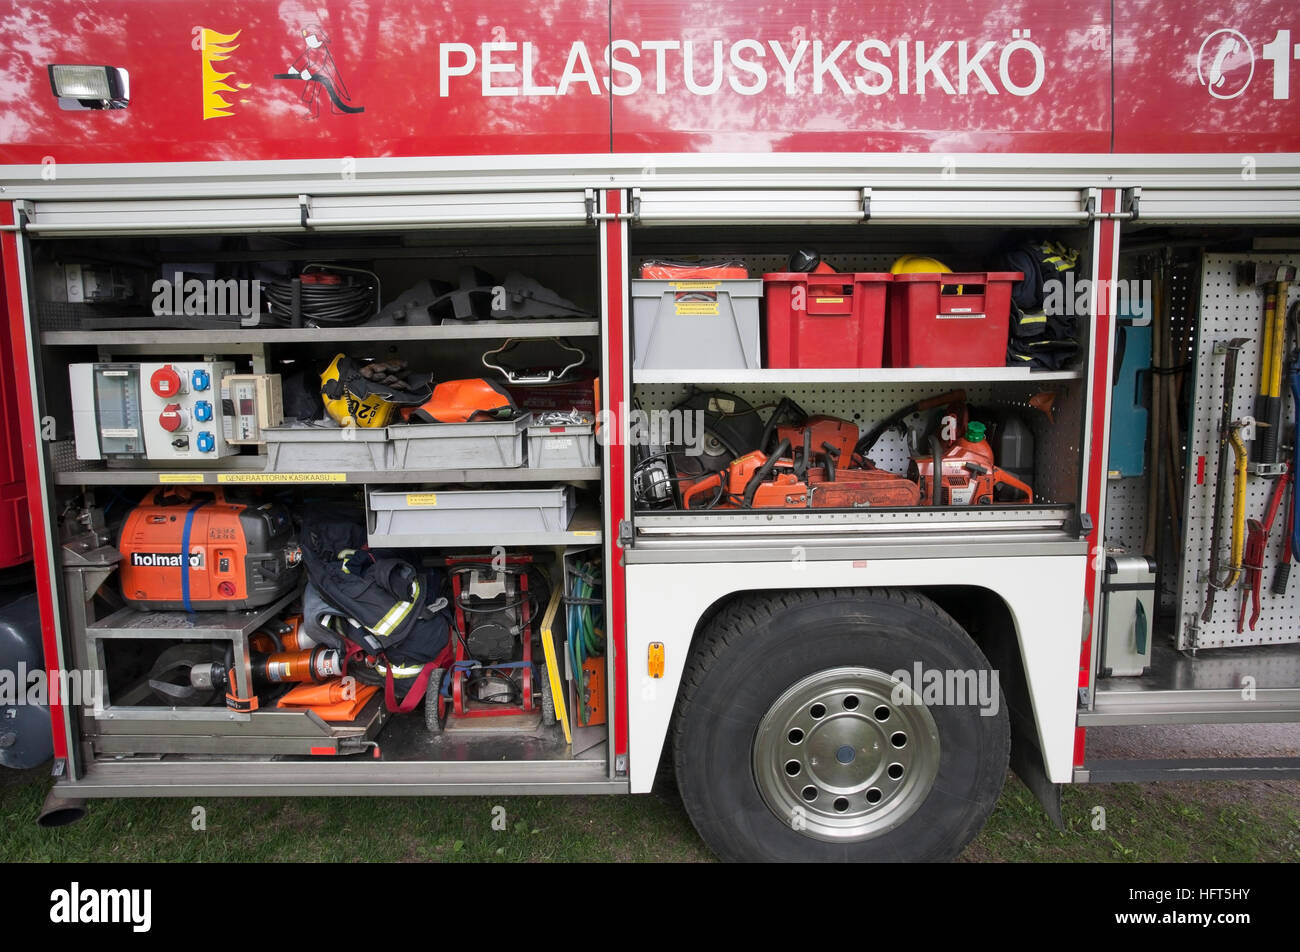 Fire truck equipment on display, Finland Stock Photo